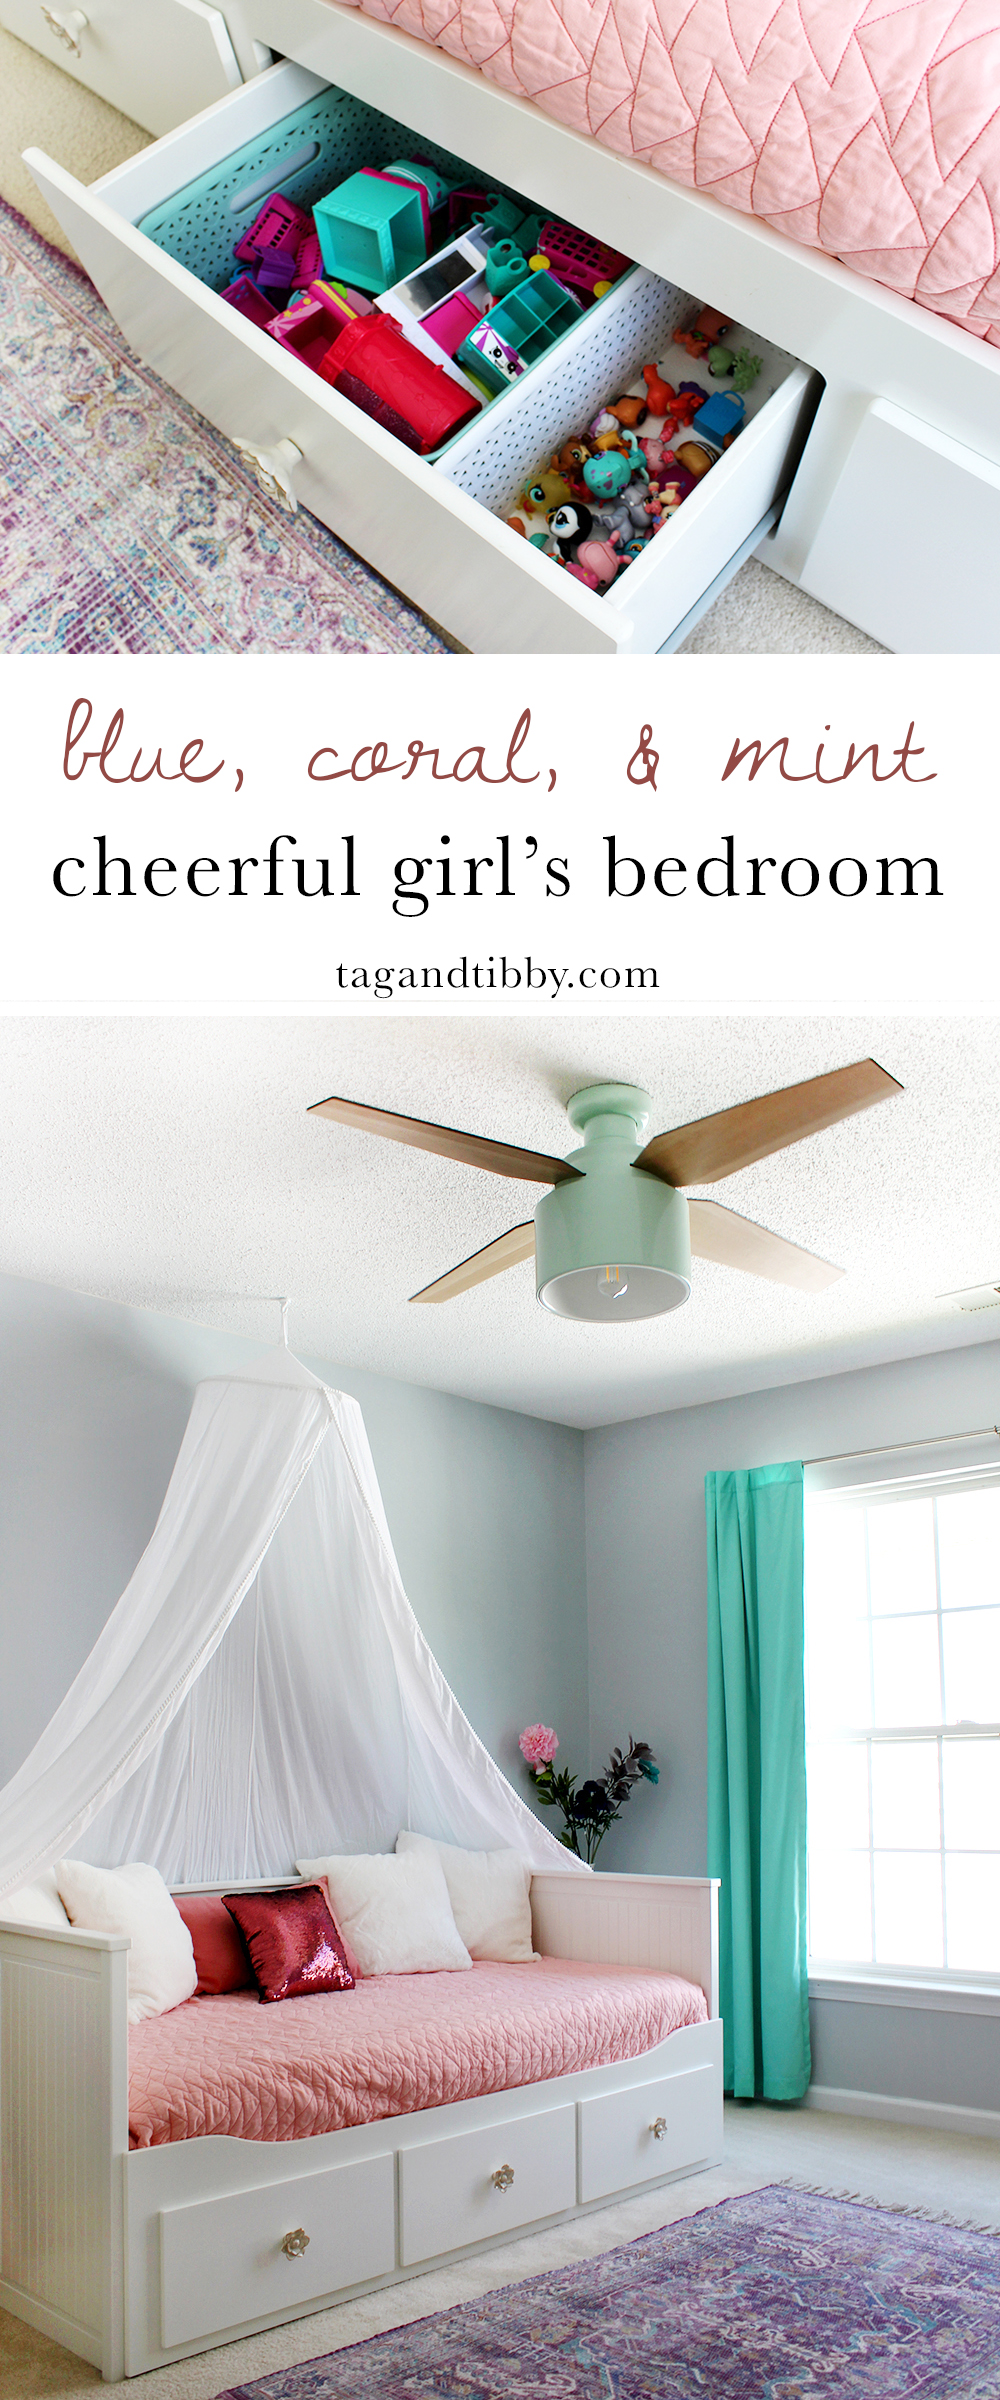 cheerful girl's bedroom in SW Misty blue paint & Cranbrook ceiling fan